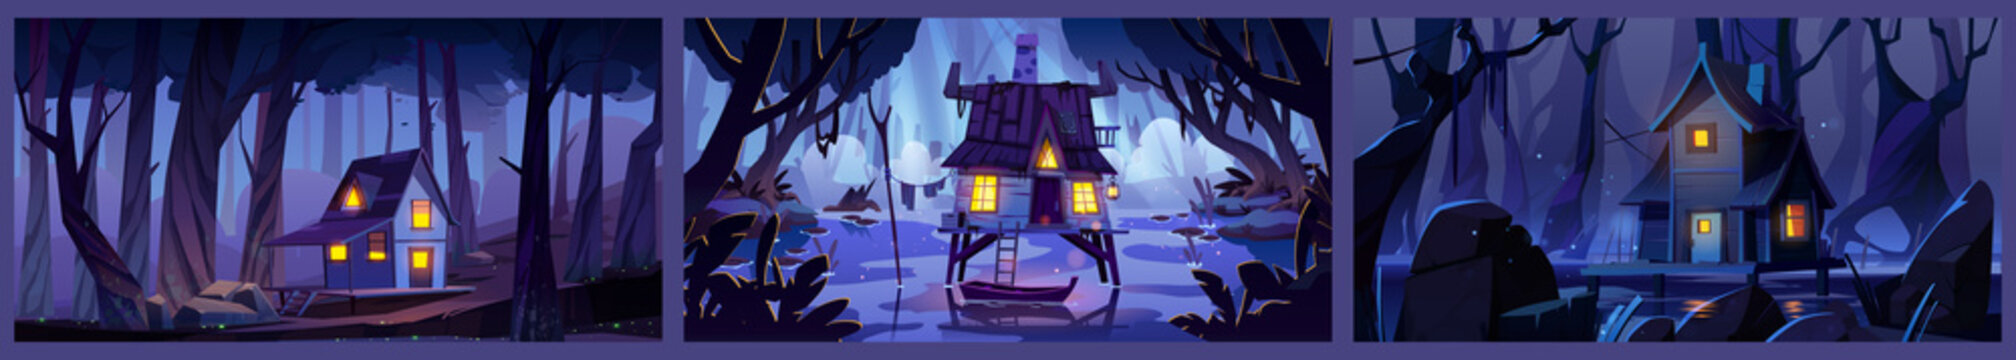 Wooden stilt houses on swamp in night forest. Backgrounds with old shacks with glow windows stand on piles in deep wood. Witch hut, computer game mystic nature landscape, Cartoon vector illustration